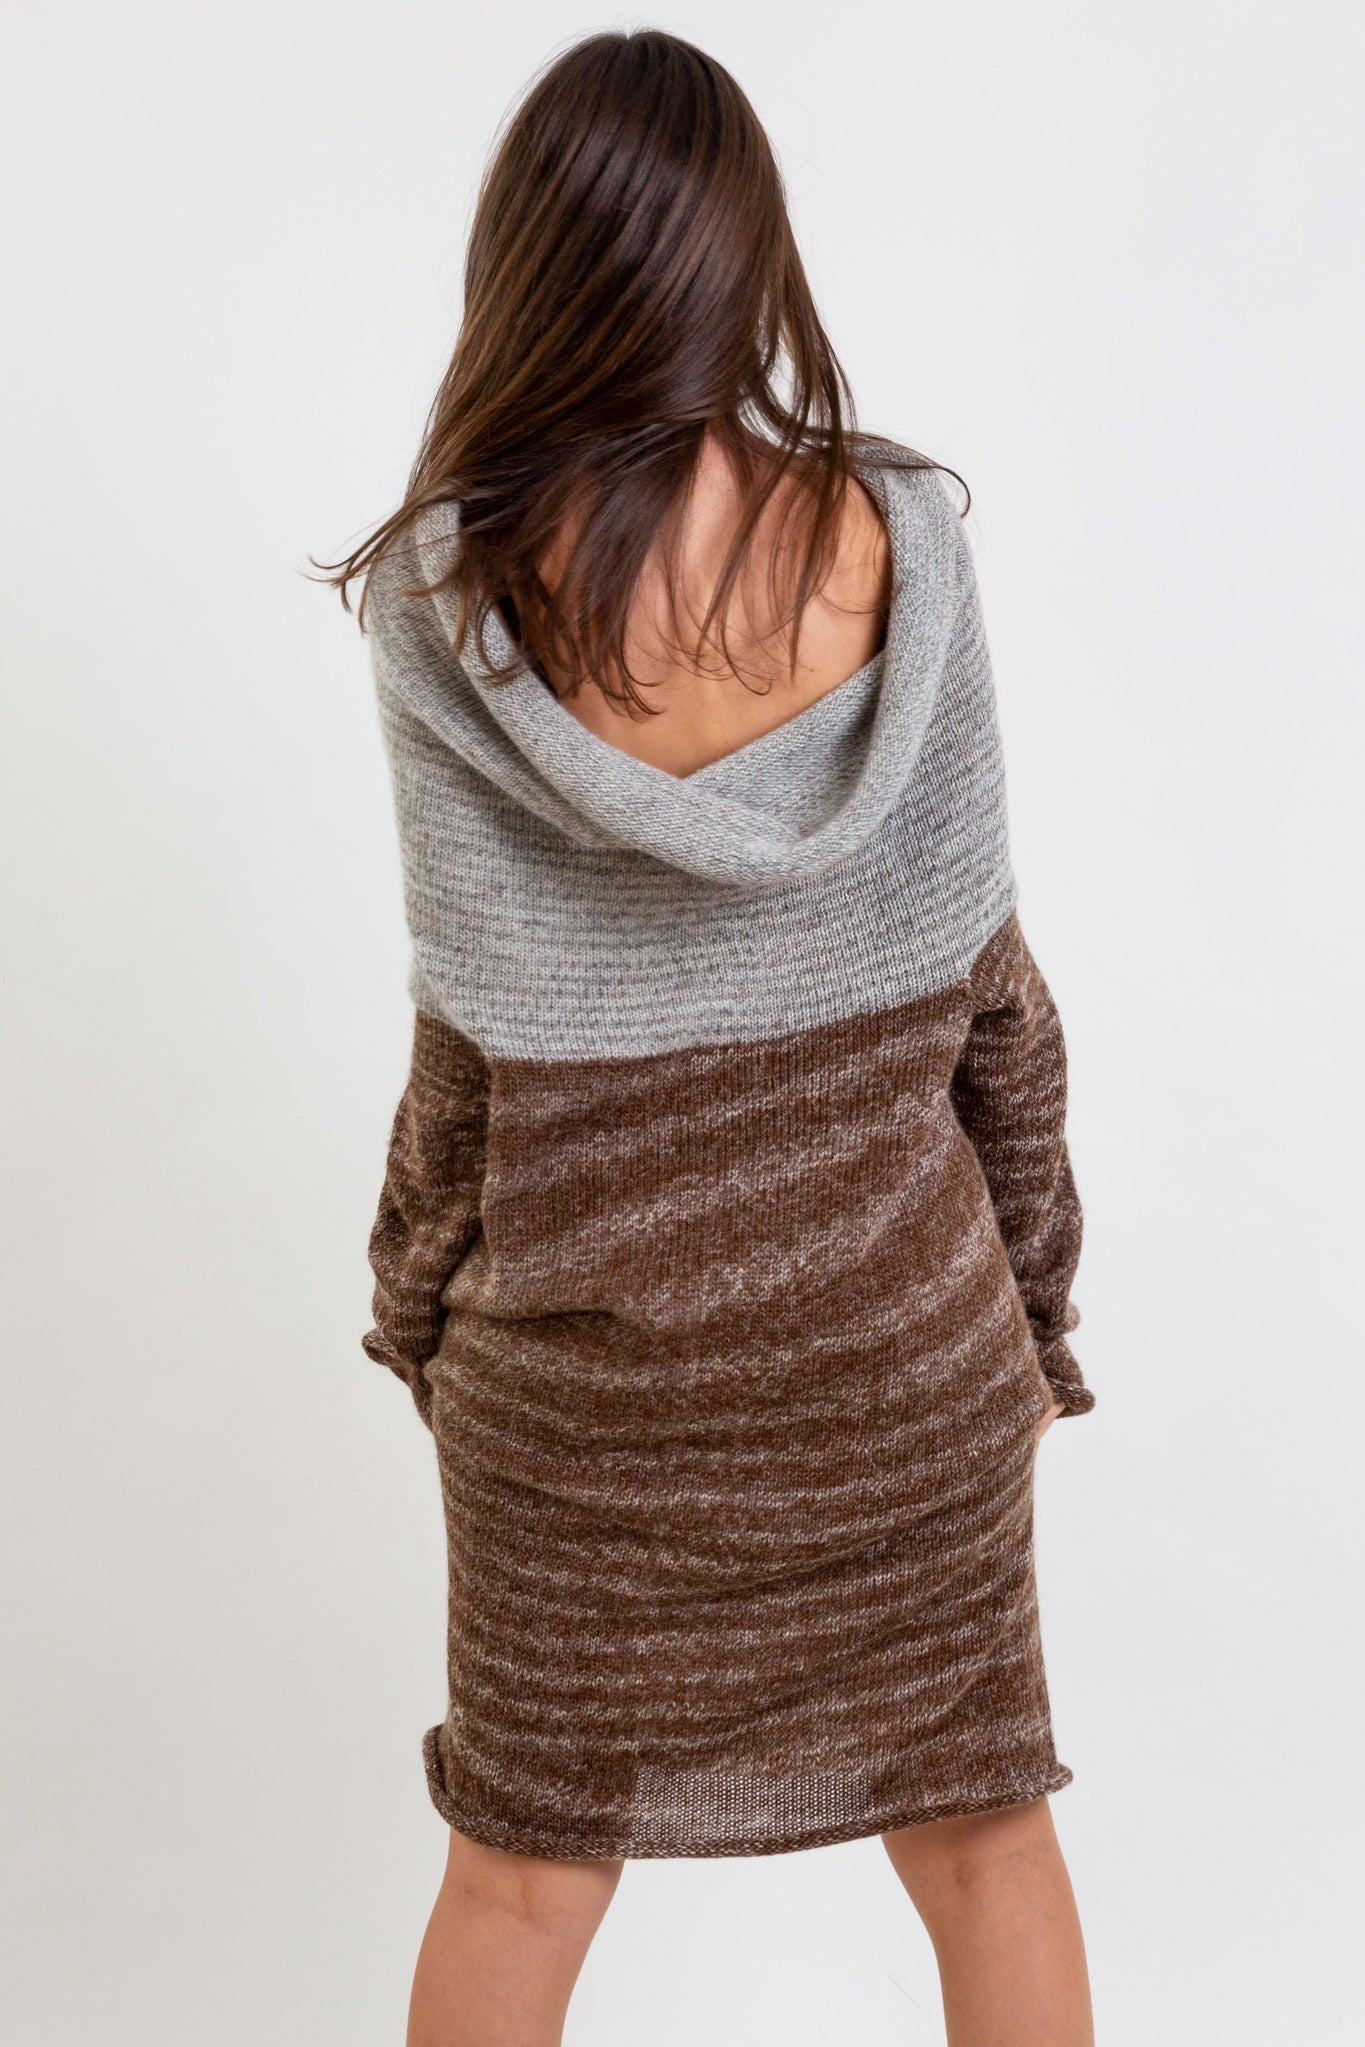 Multifunctional alpaca wool dress in Mixbrown & Mixgrey, which also can be a top or hoody.